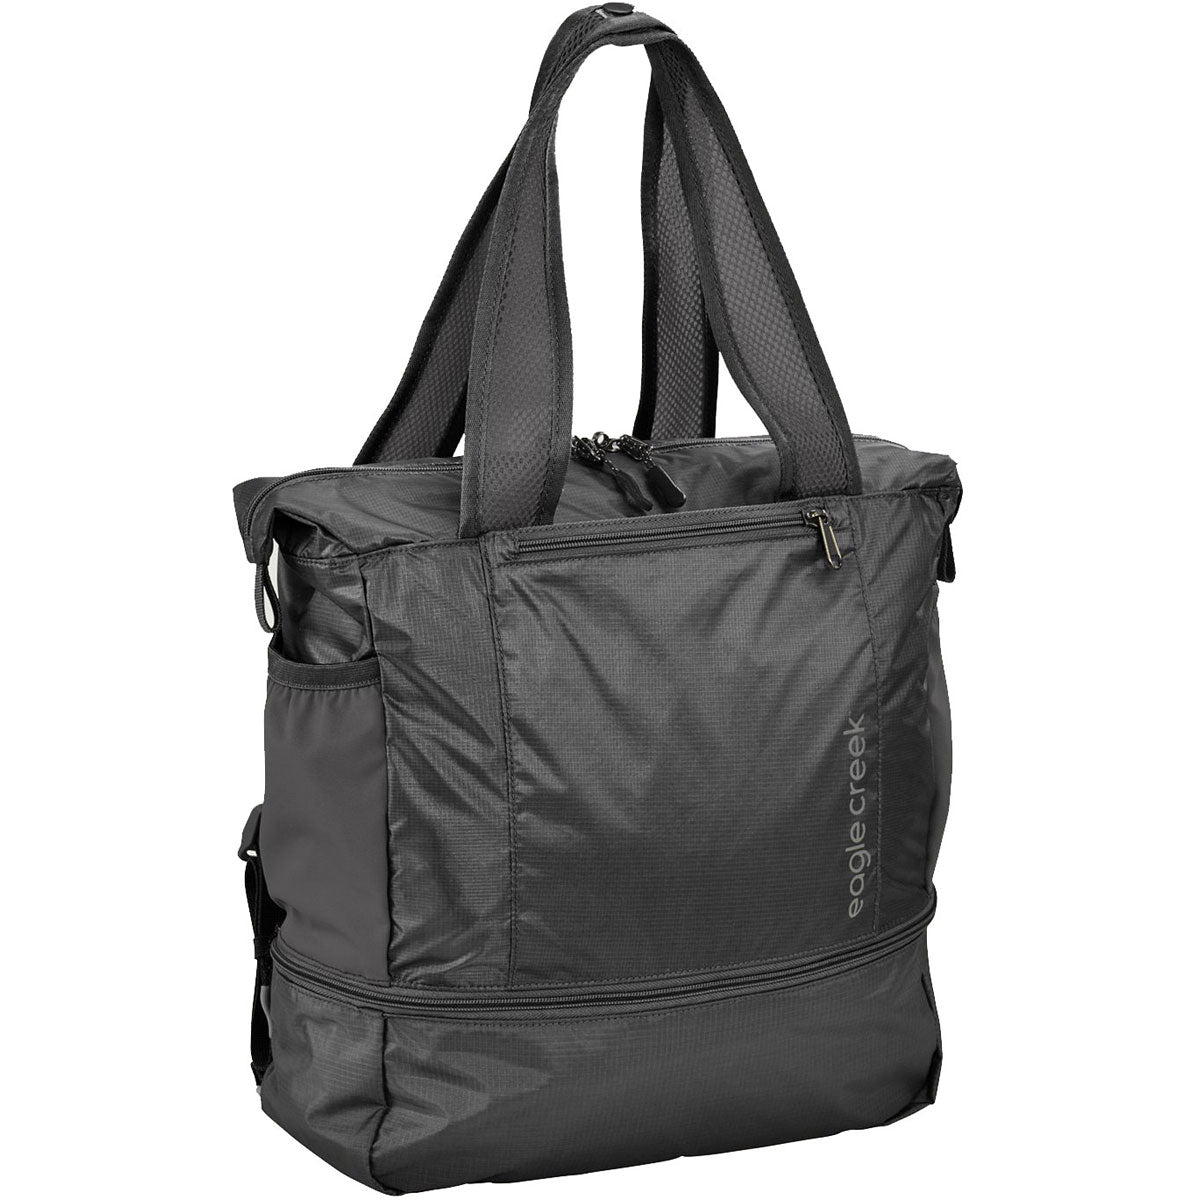 Eagle Creek 2-in-1 Tote/Backpack